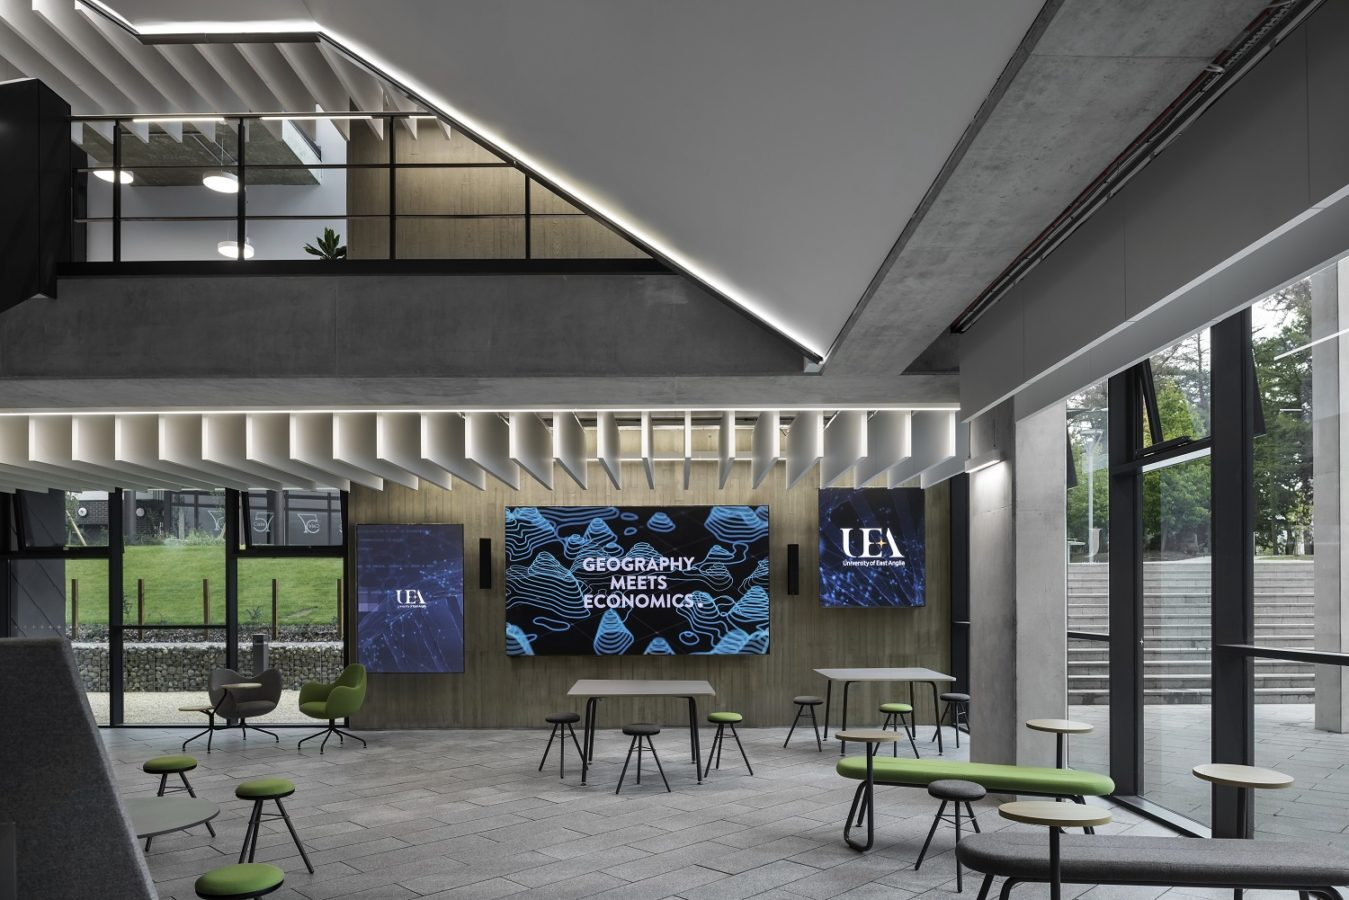 LED Wall - UEA Science Building Audio Visual Case Study